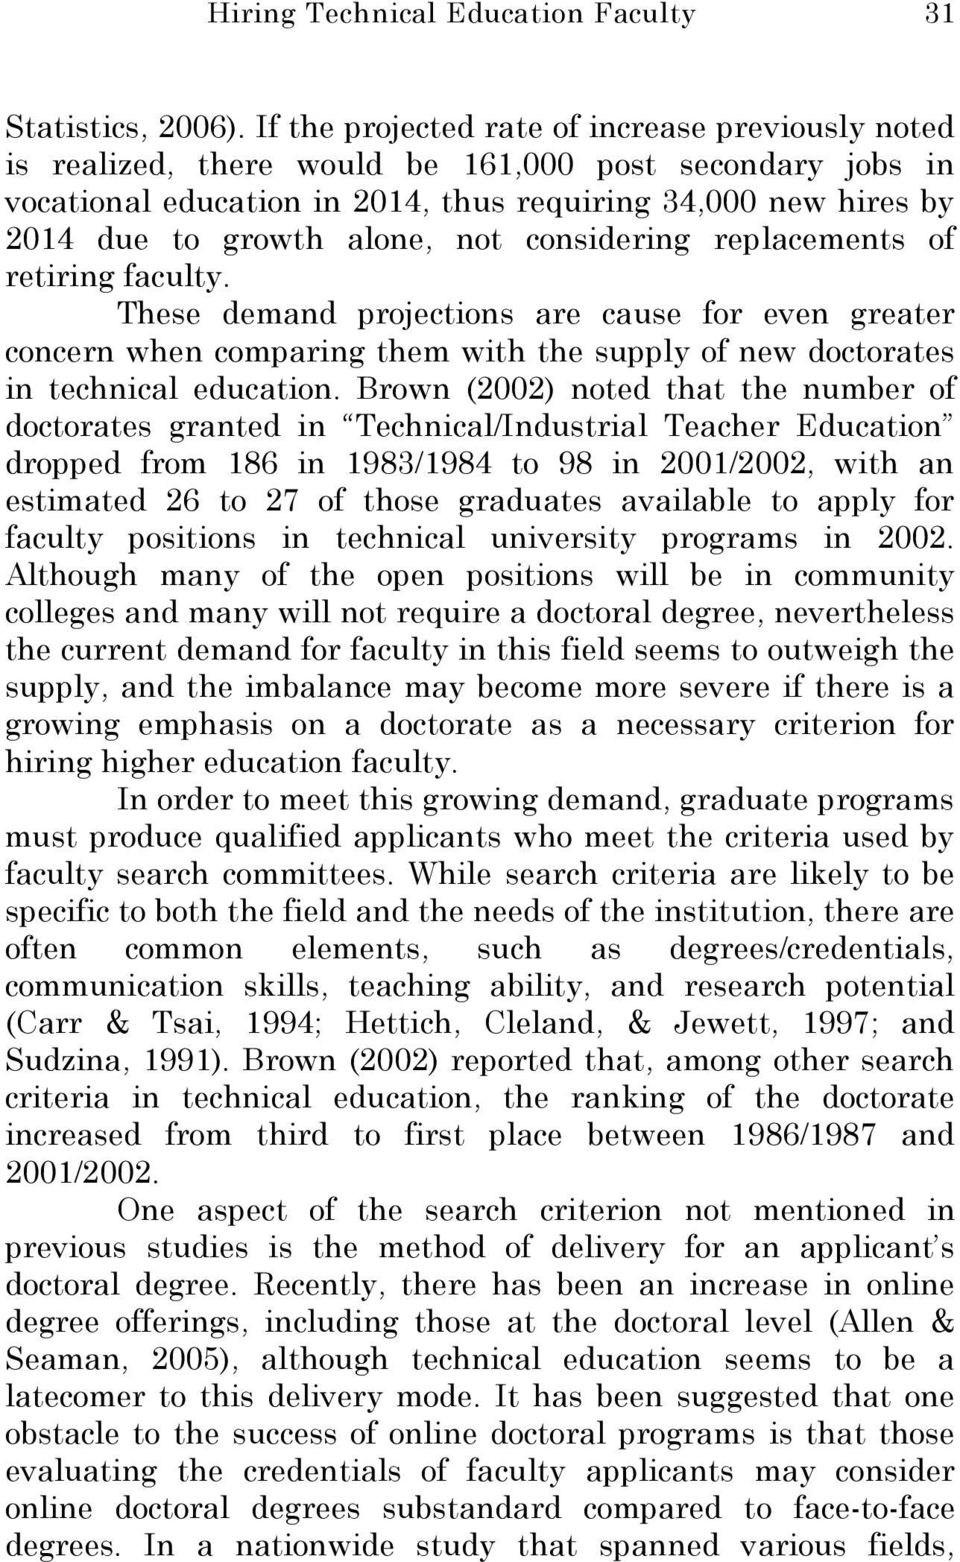 alone, not considering replacements of retiring faculty. These demand projections are cause for even greater concern when comparing them with the supply of new doctorates in technical education.